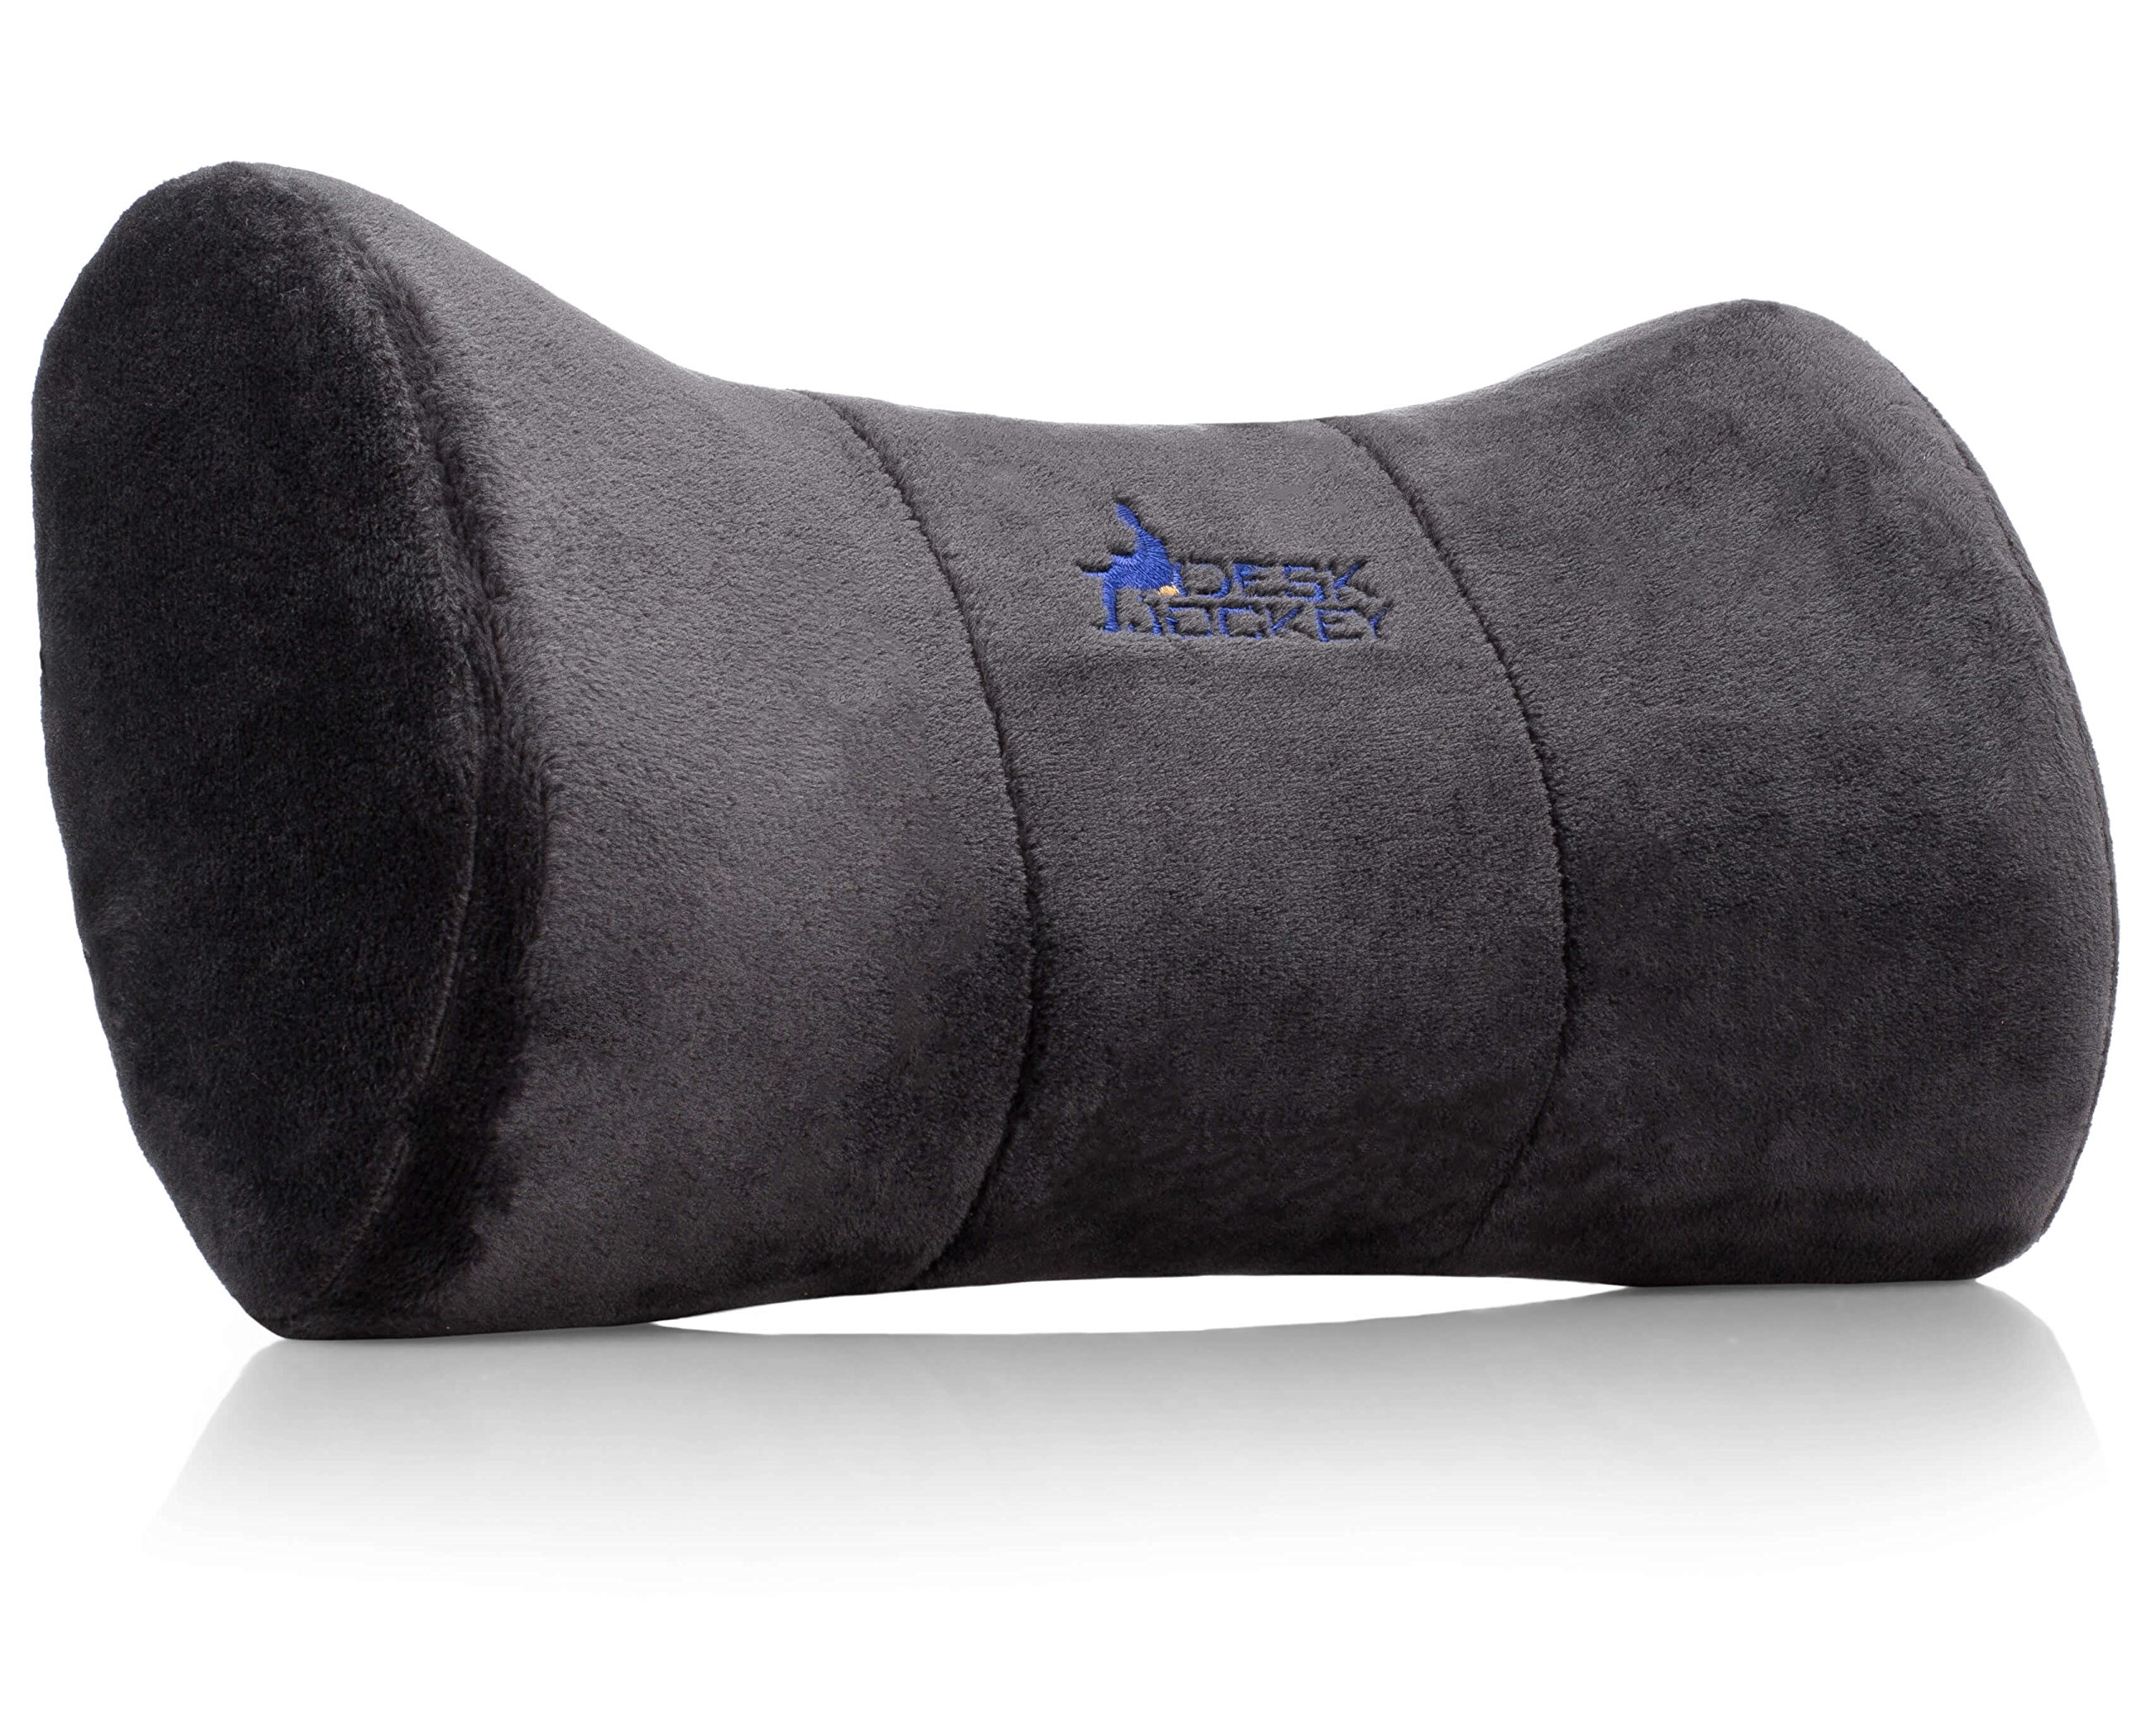 Neck Pillow Headrest Support Cushion - Clinical Grade For Chairs, Recliners, Driving Bucket Seats